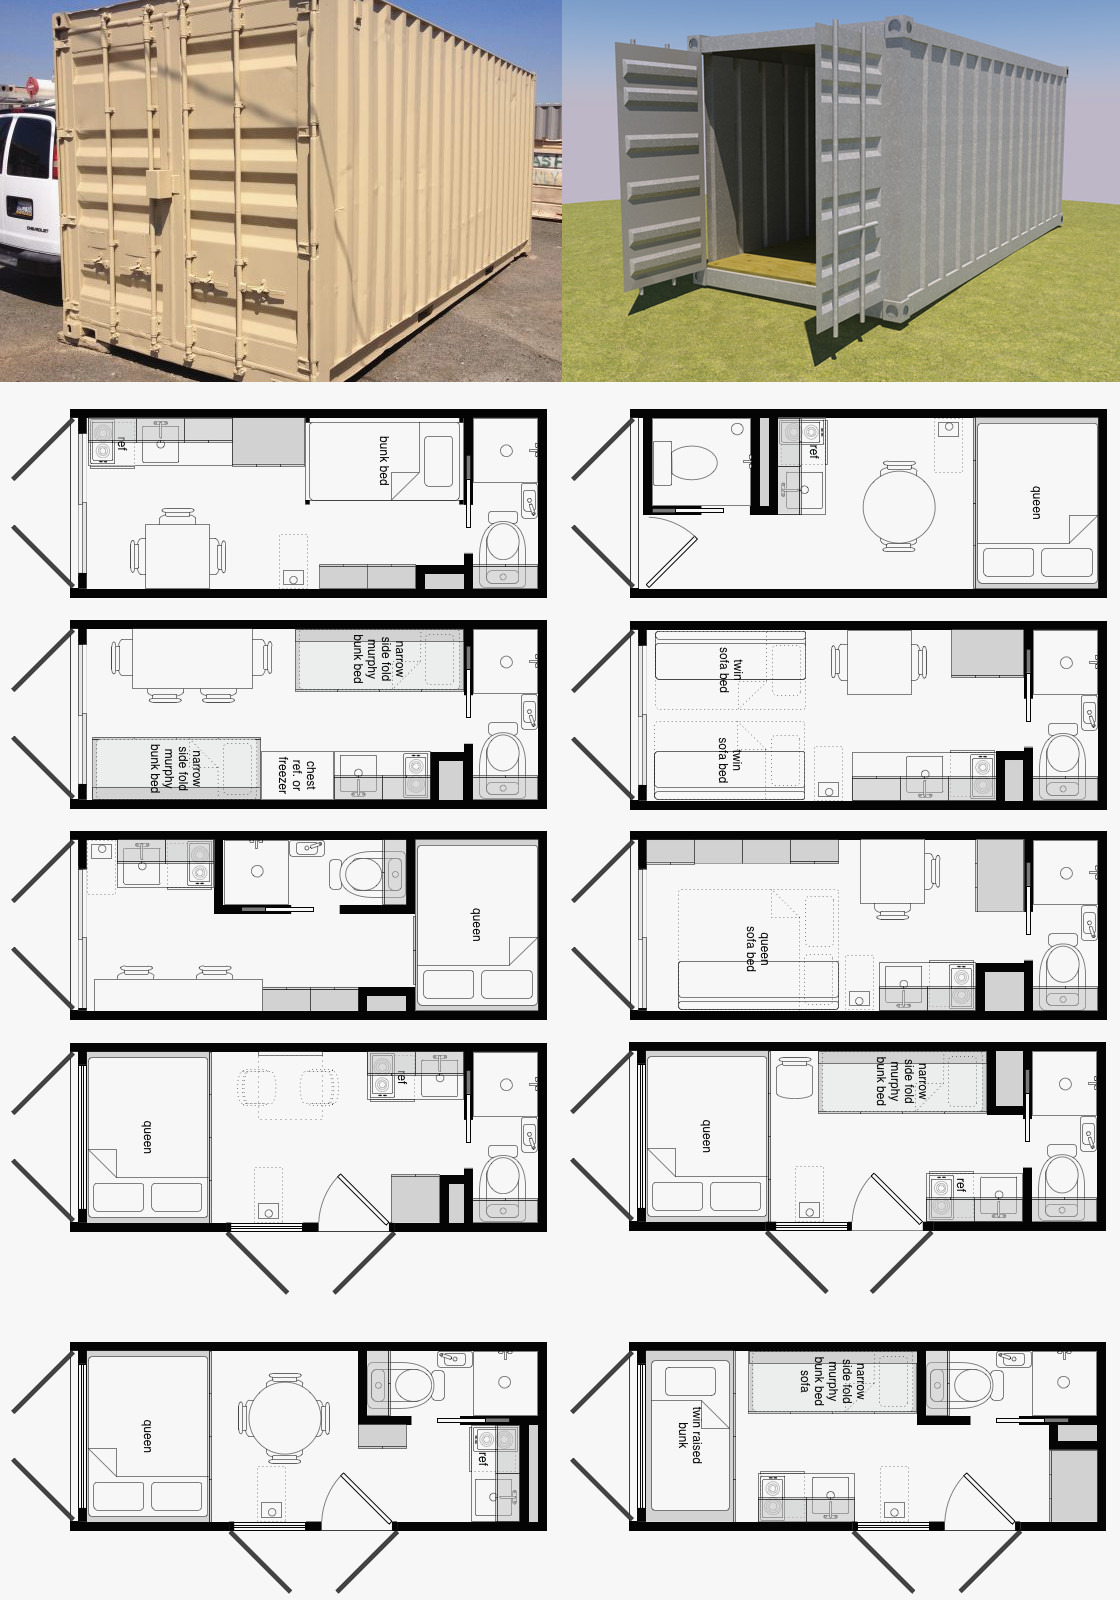 shipping container home floor plans elegant 20 foot shipping container floor plan brainstorm of shipping container home floor plans